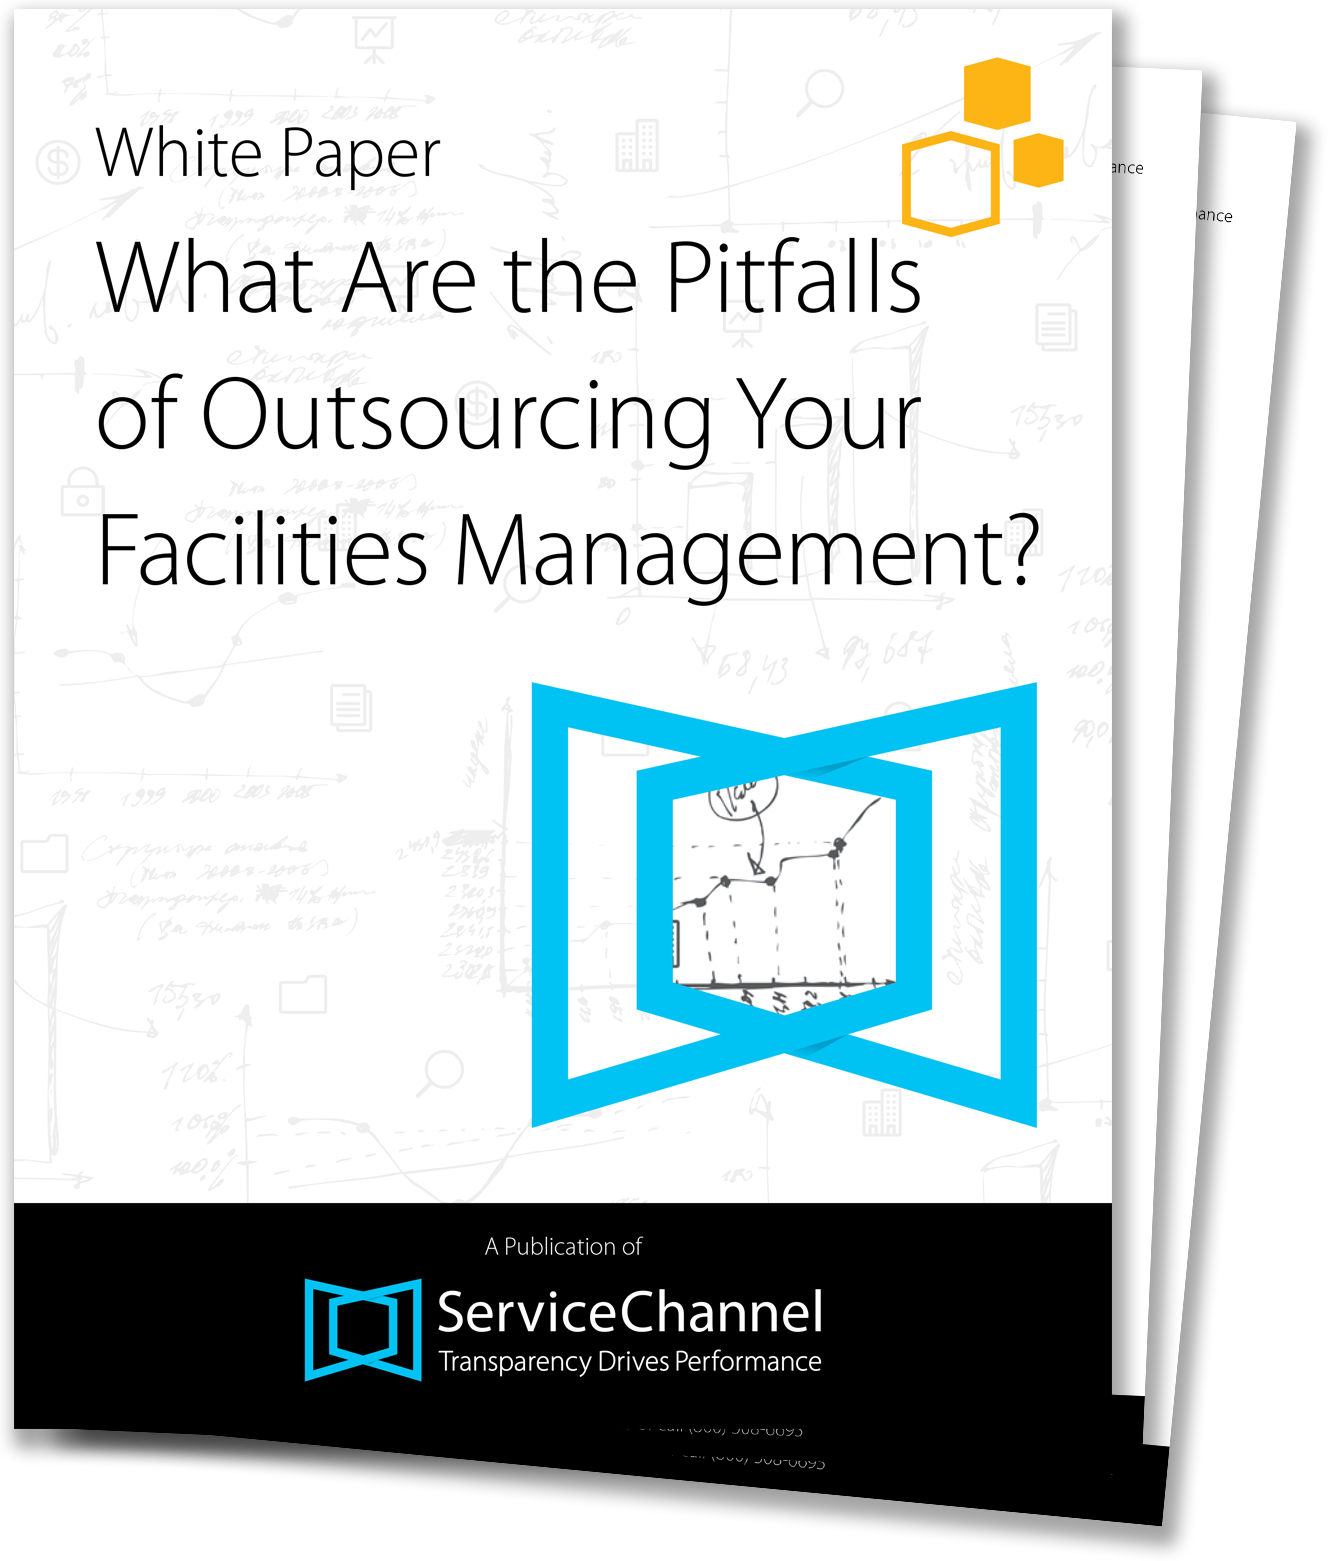 What_Are_the_Pitfalls_of_Outsourcing_Your_Facilities_Management_White_Paper_CTA.png